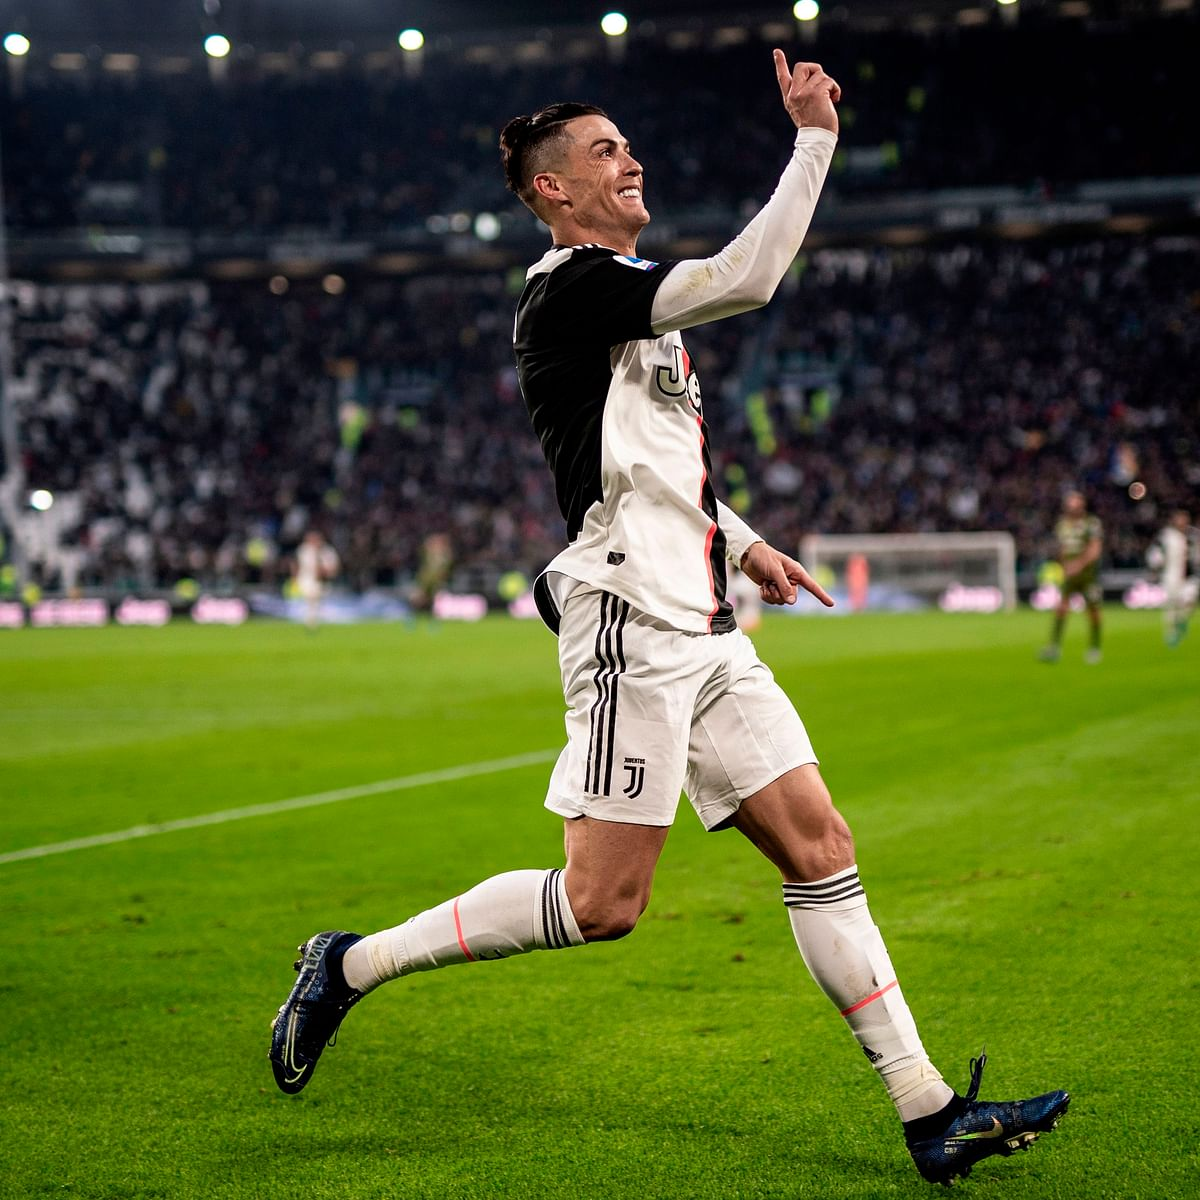 Cristiano Ronaldo becomes first player to score 50 goals in Serie A, Premier League and La Liga